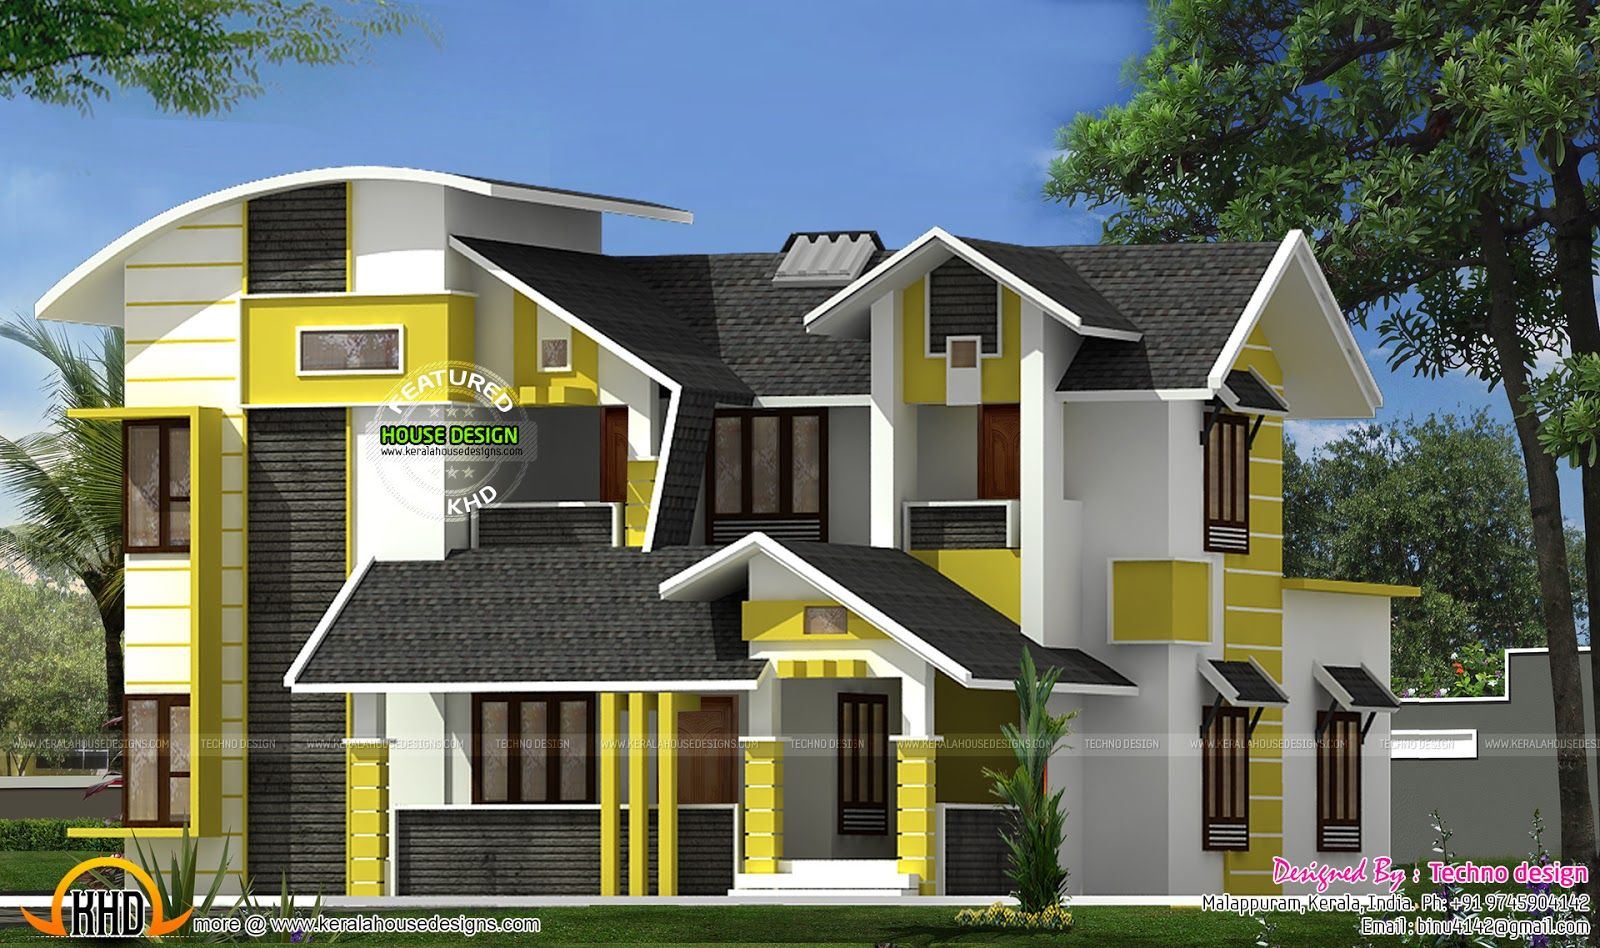 Charming Contemporary Home Designs At Malappuram Part - 3: 1980 Square Feet, 4 Bedroom Contemporary Mix Roof House Design Provided By  Techno Design, Malappuram, Kerala.